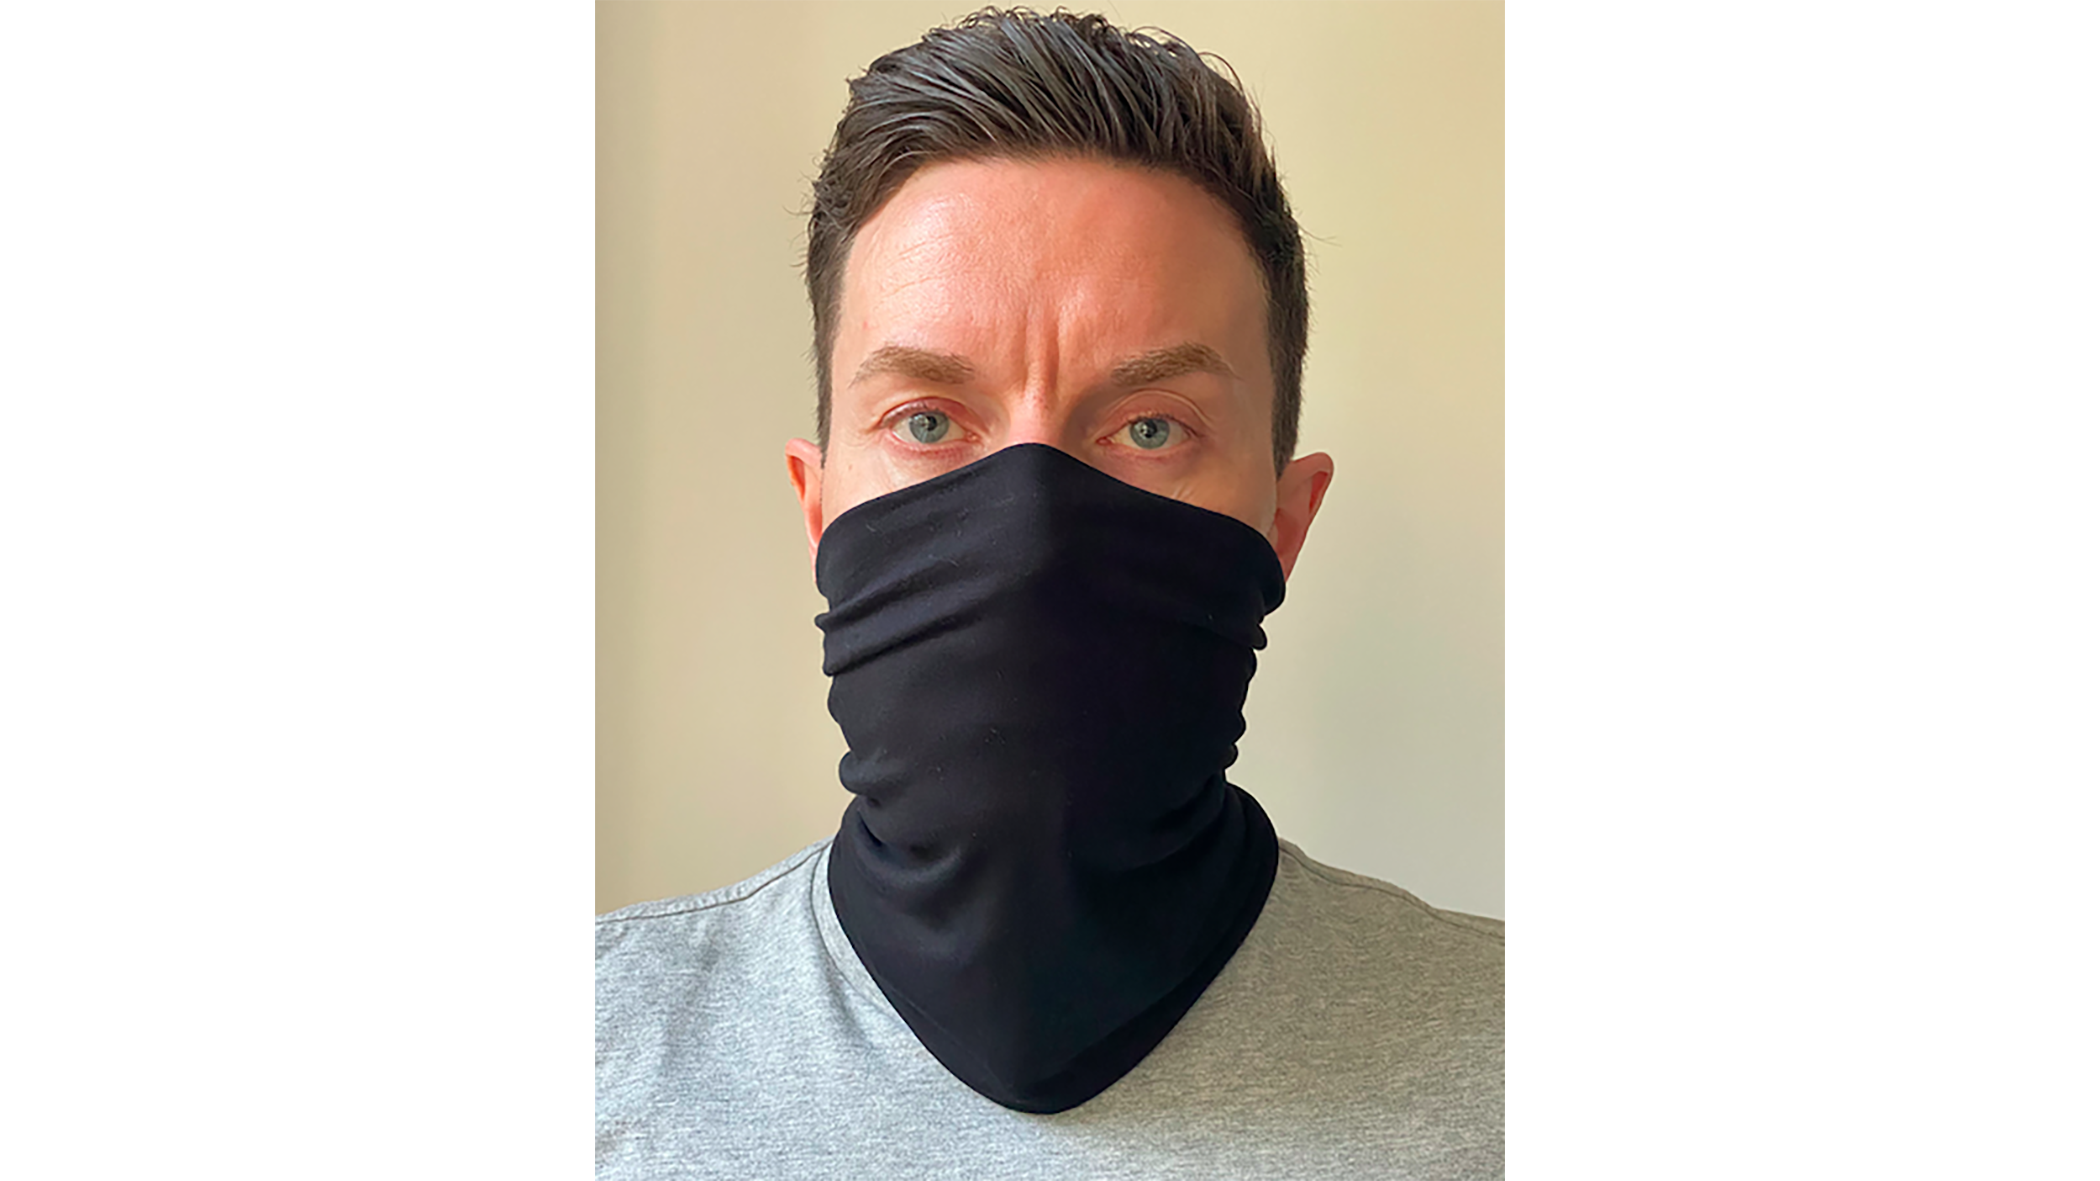 Shield360 has developed a washable snood which is manufactured in the UK